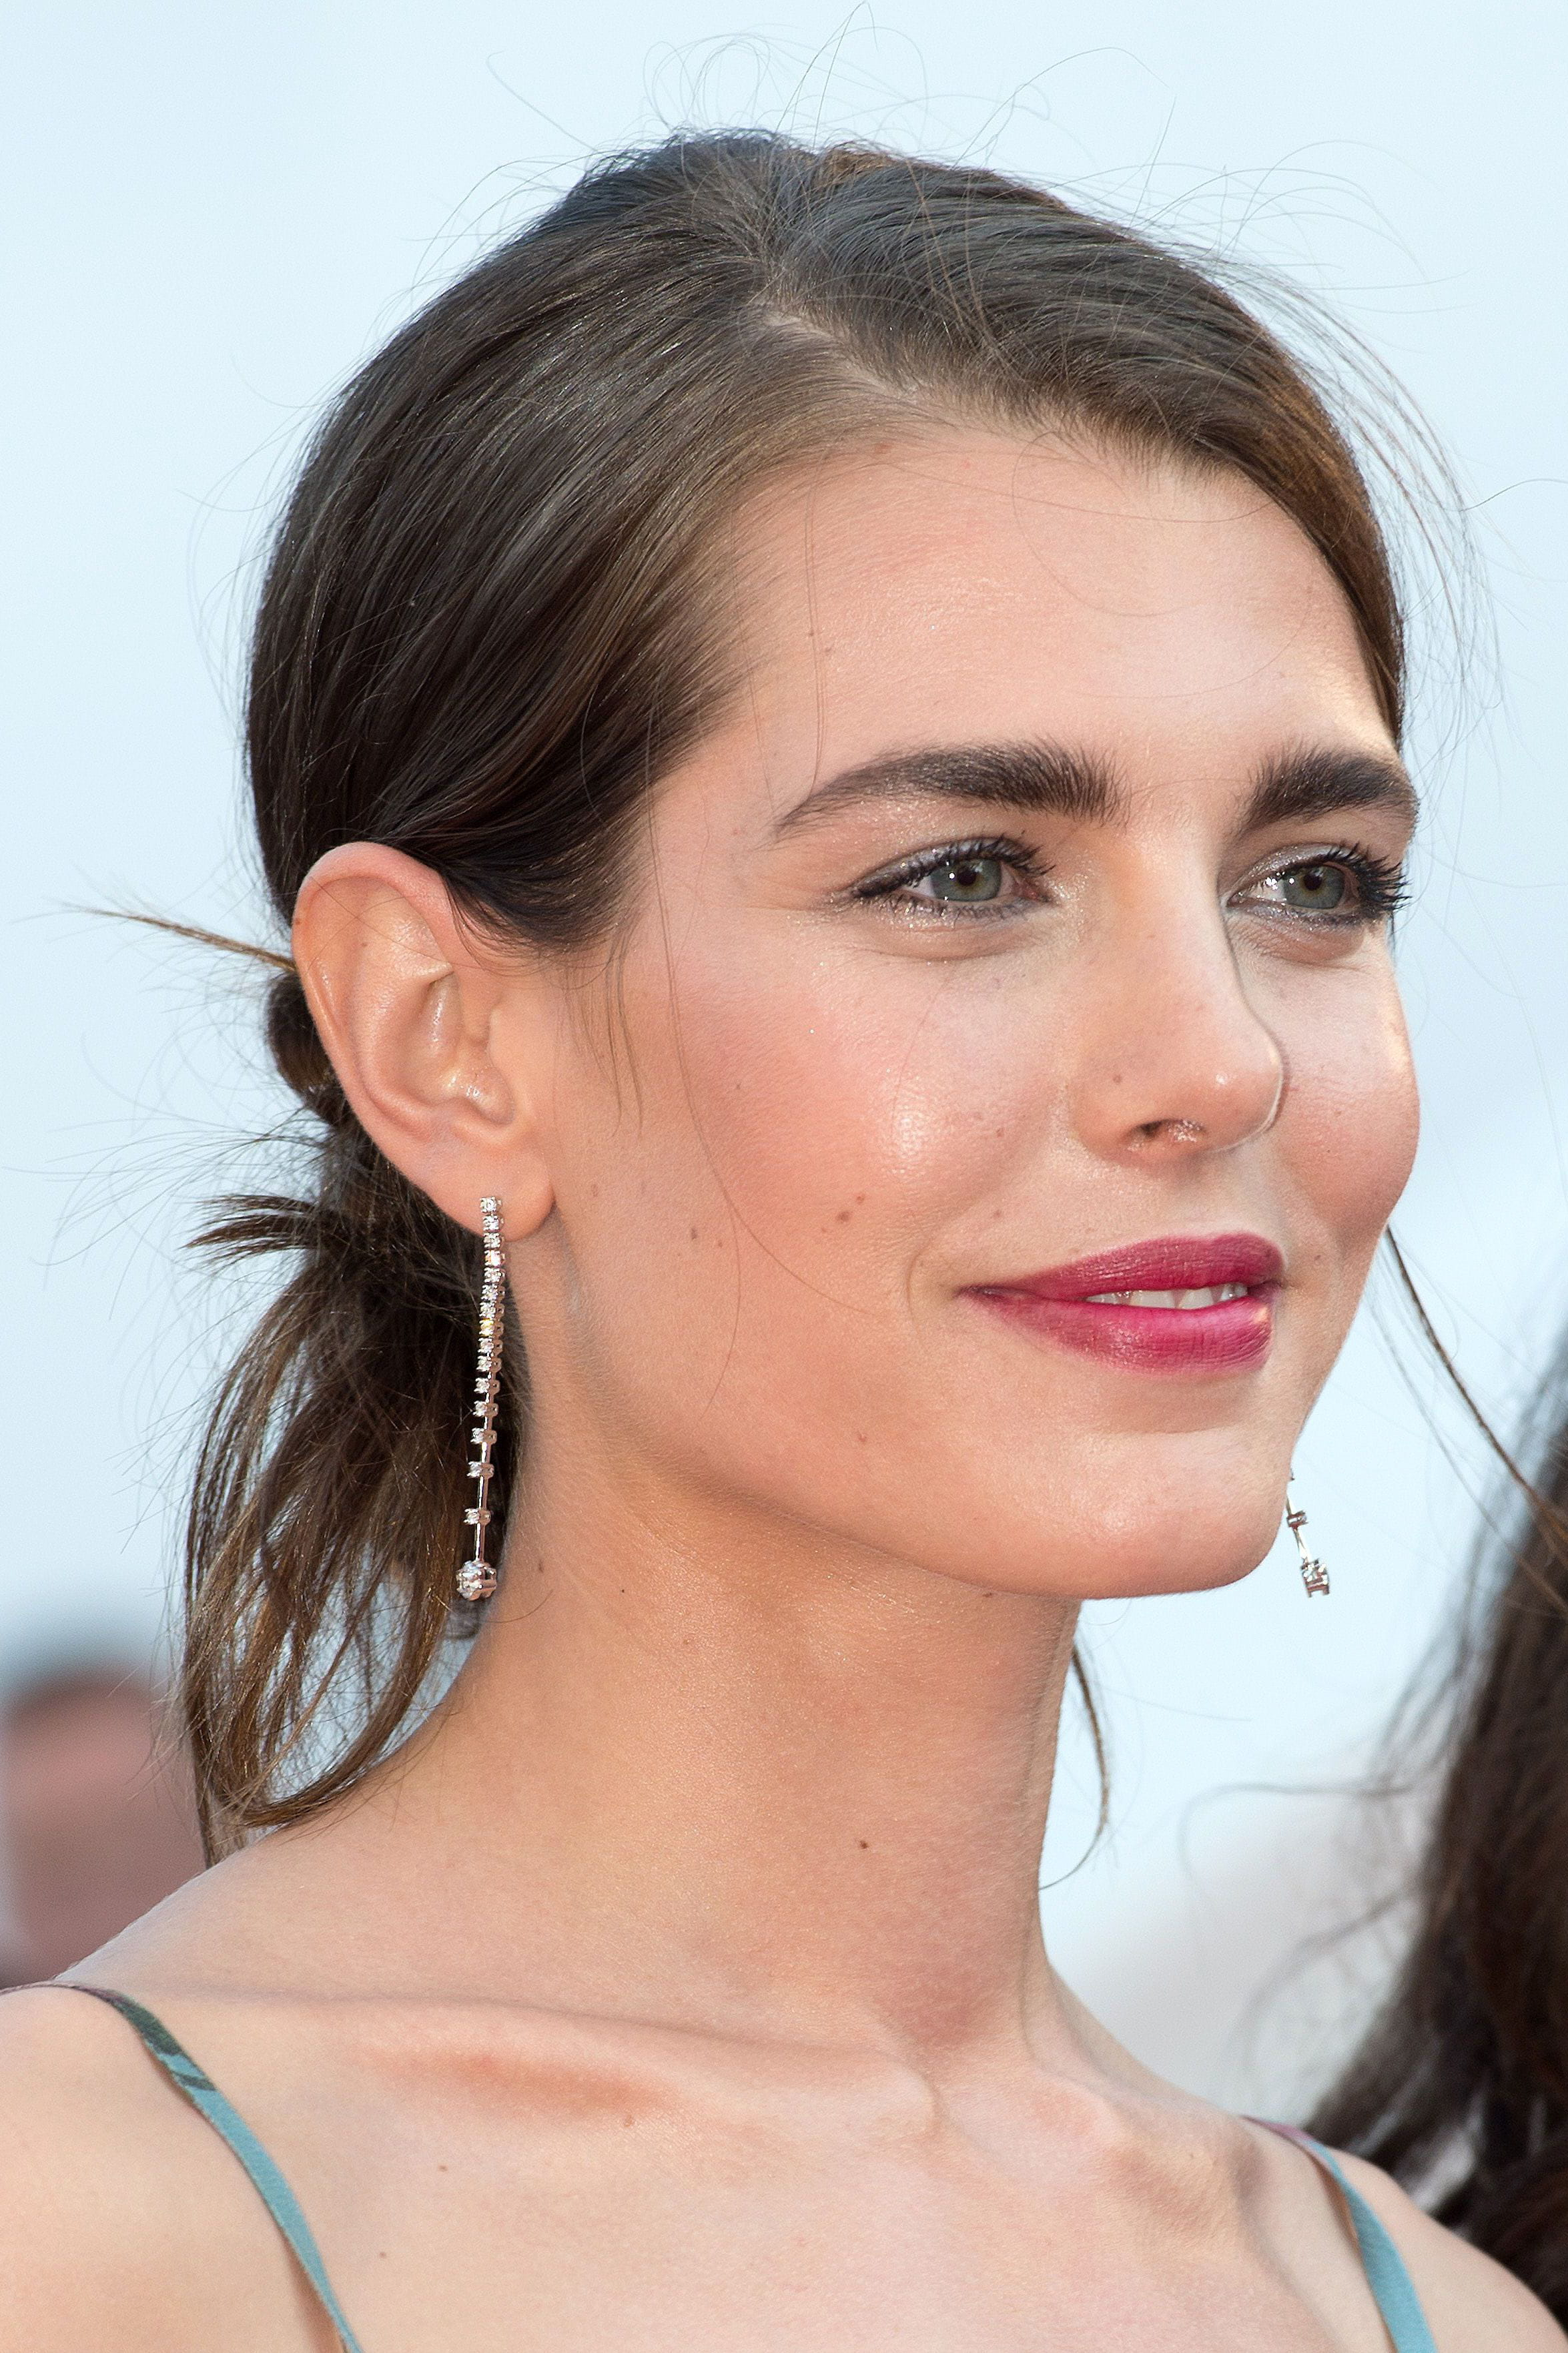 Charlotte casiraghi forum fashion spot Build a Mobile App to Geo Tag a Photo Tyler